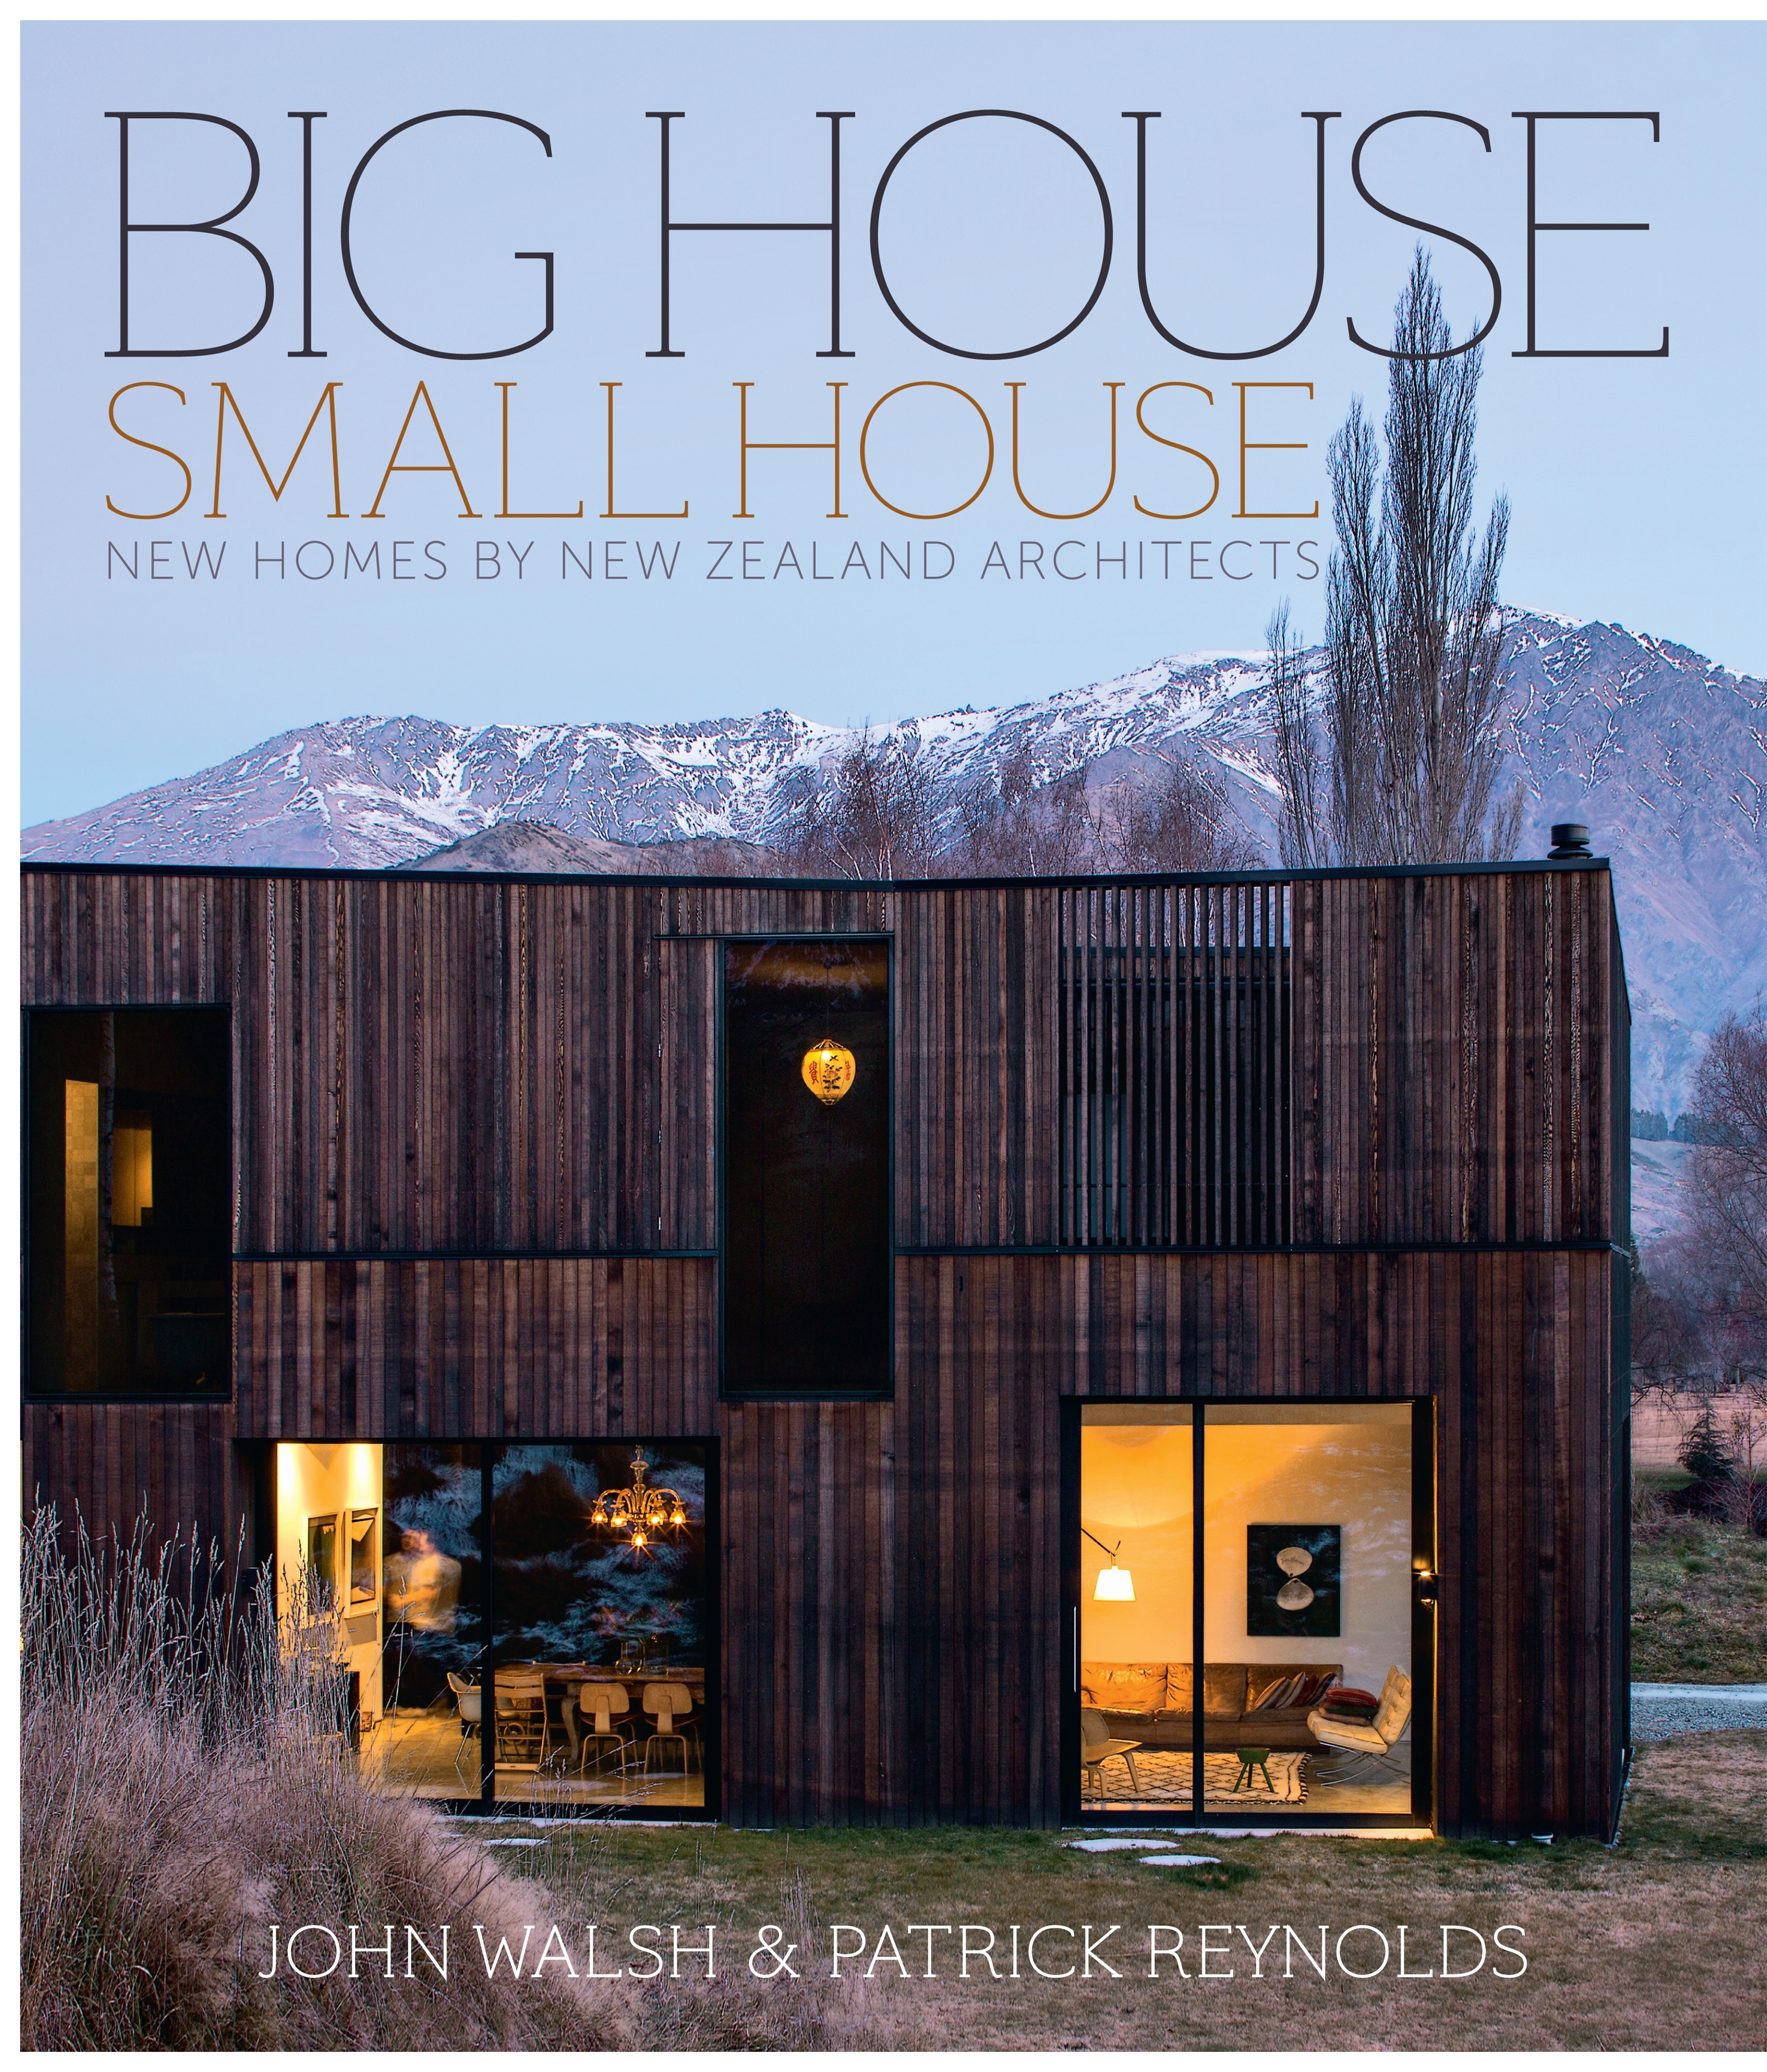 Big house small house by john walsh penguin books new for Modern house design books